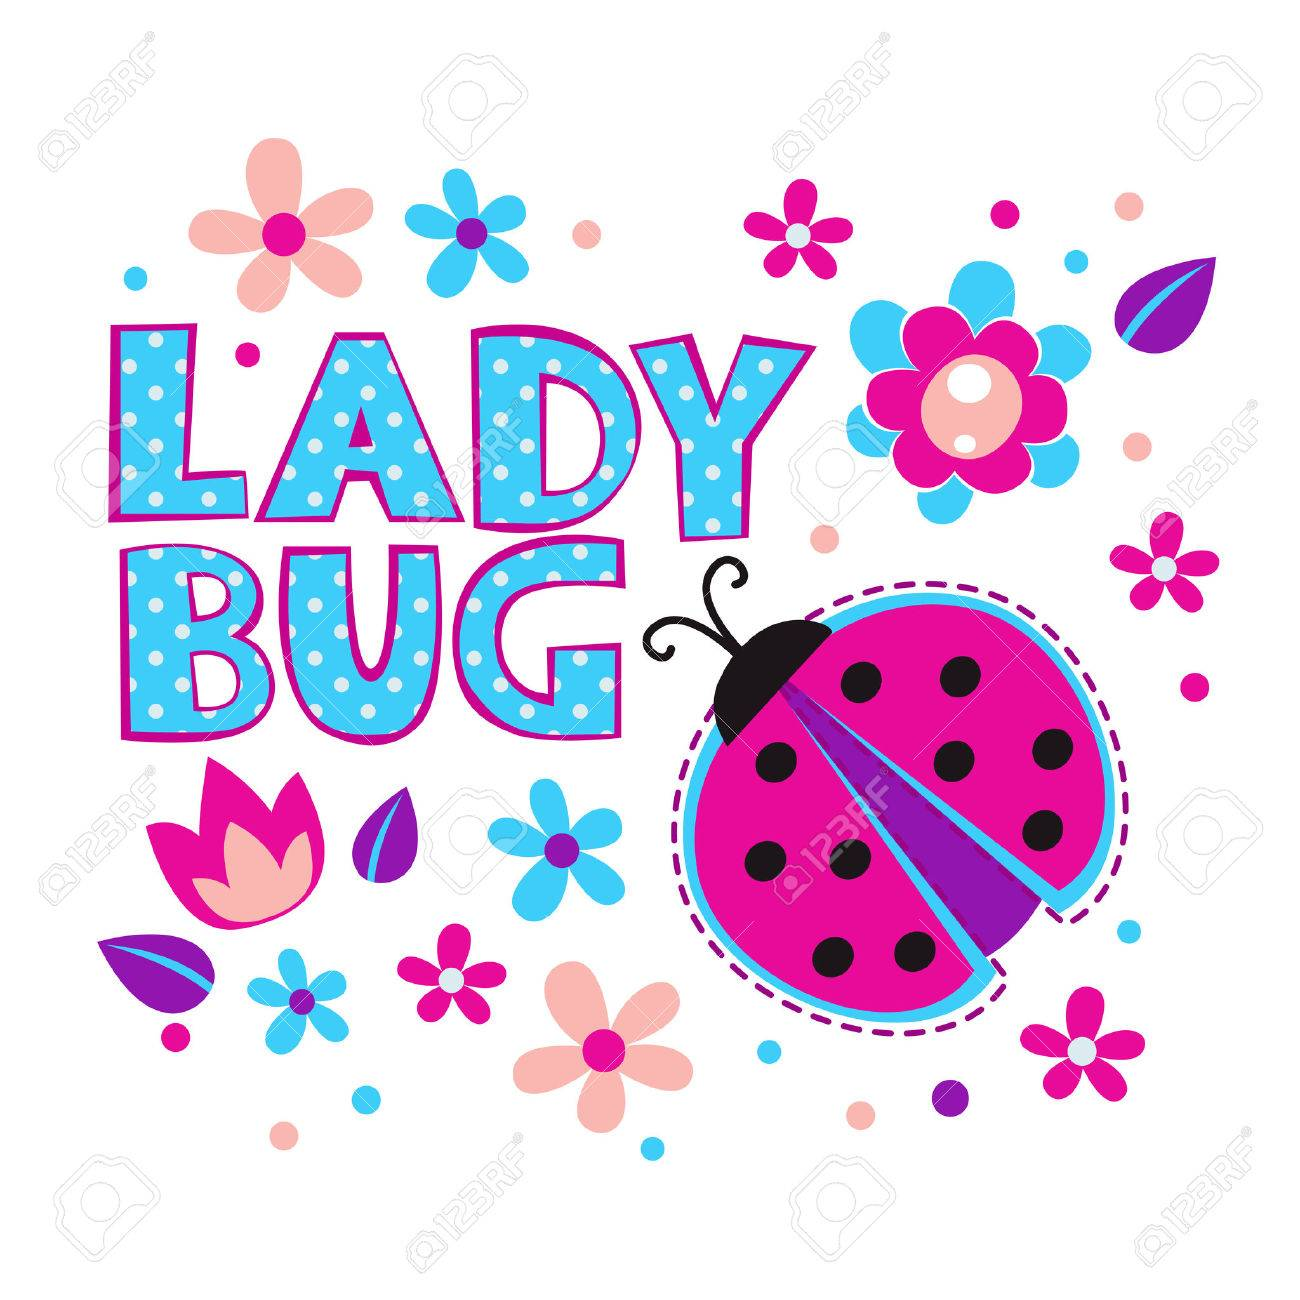 Free t-shirt design - Tshirt Cute Girlish Illustration With Ladybug And Flowers Vector Template For T Shirts